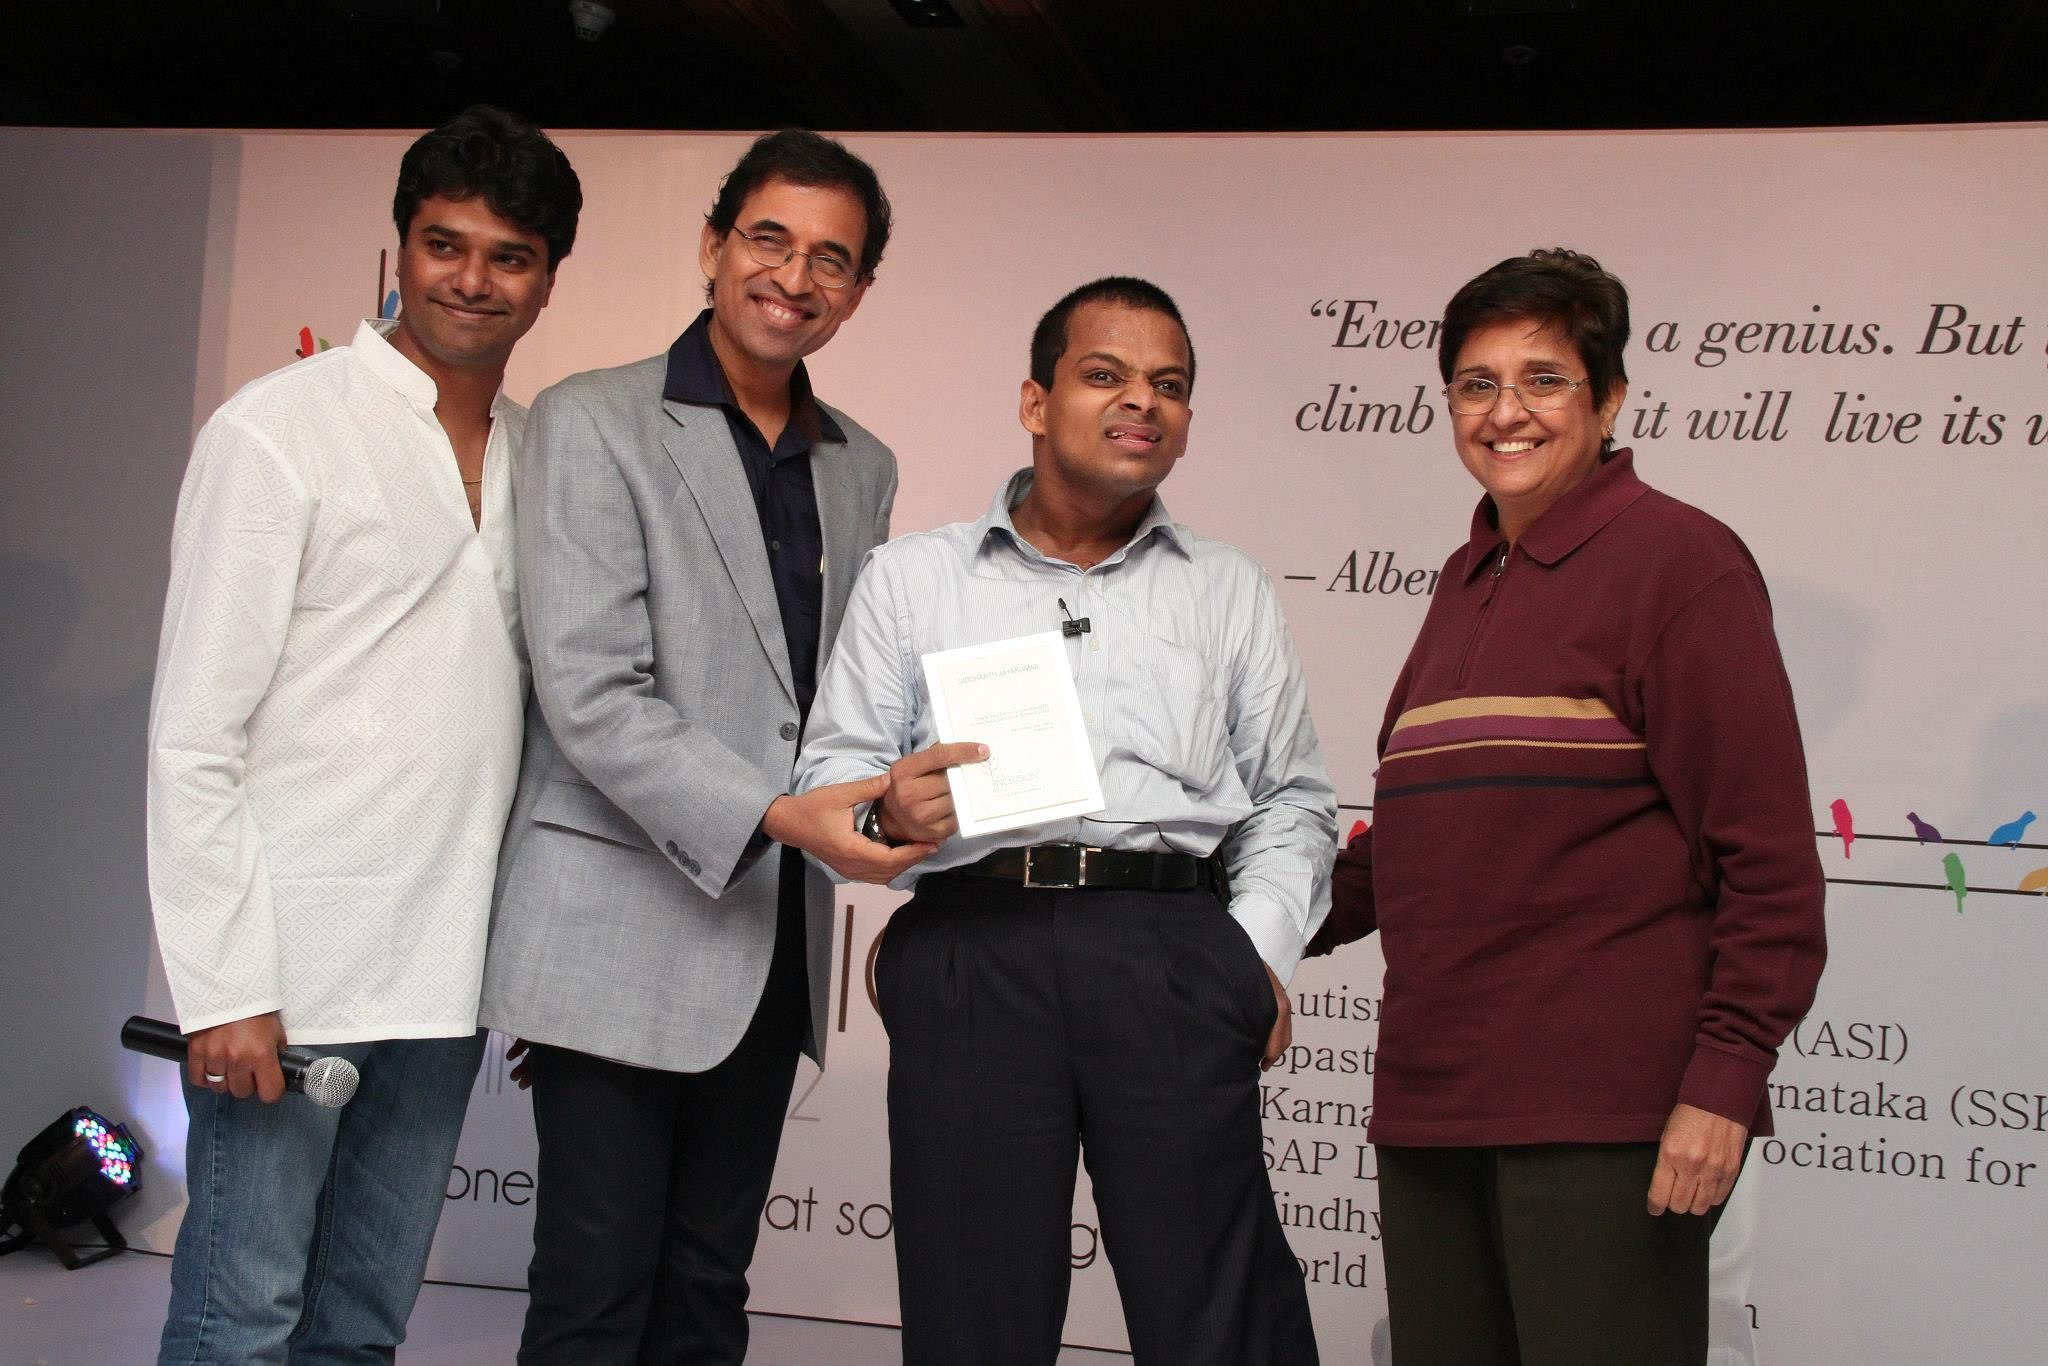 Siddharth has received various awards and recognitions for his work.